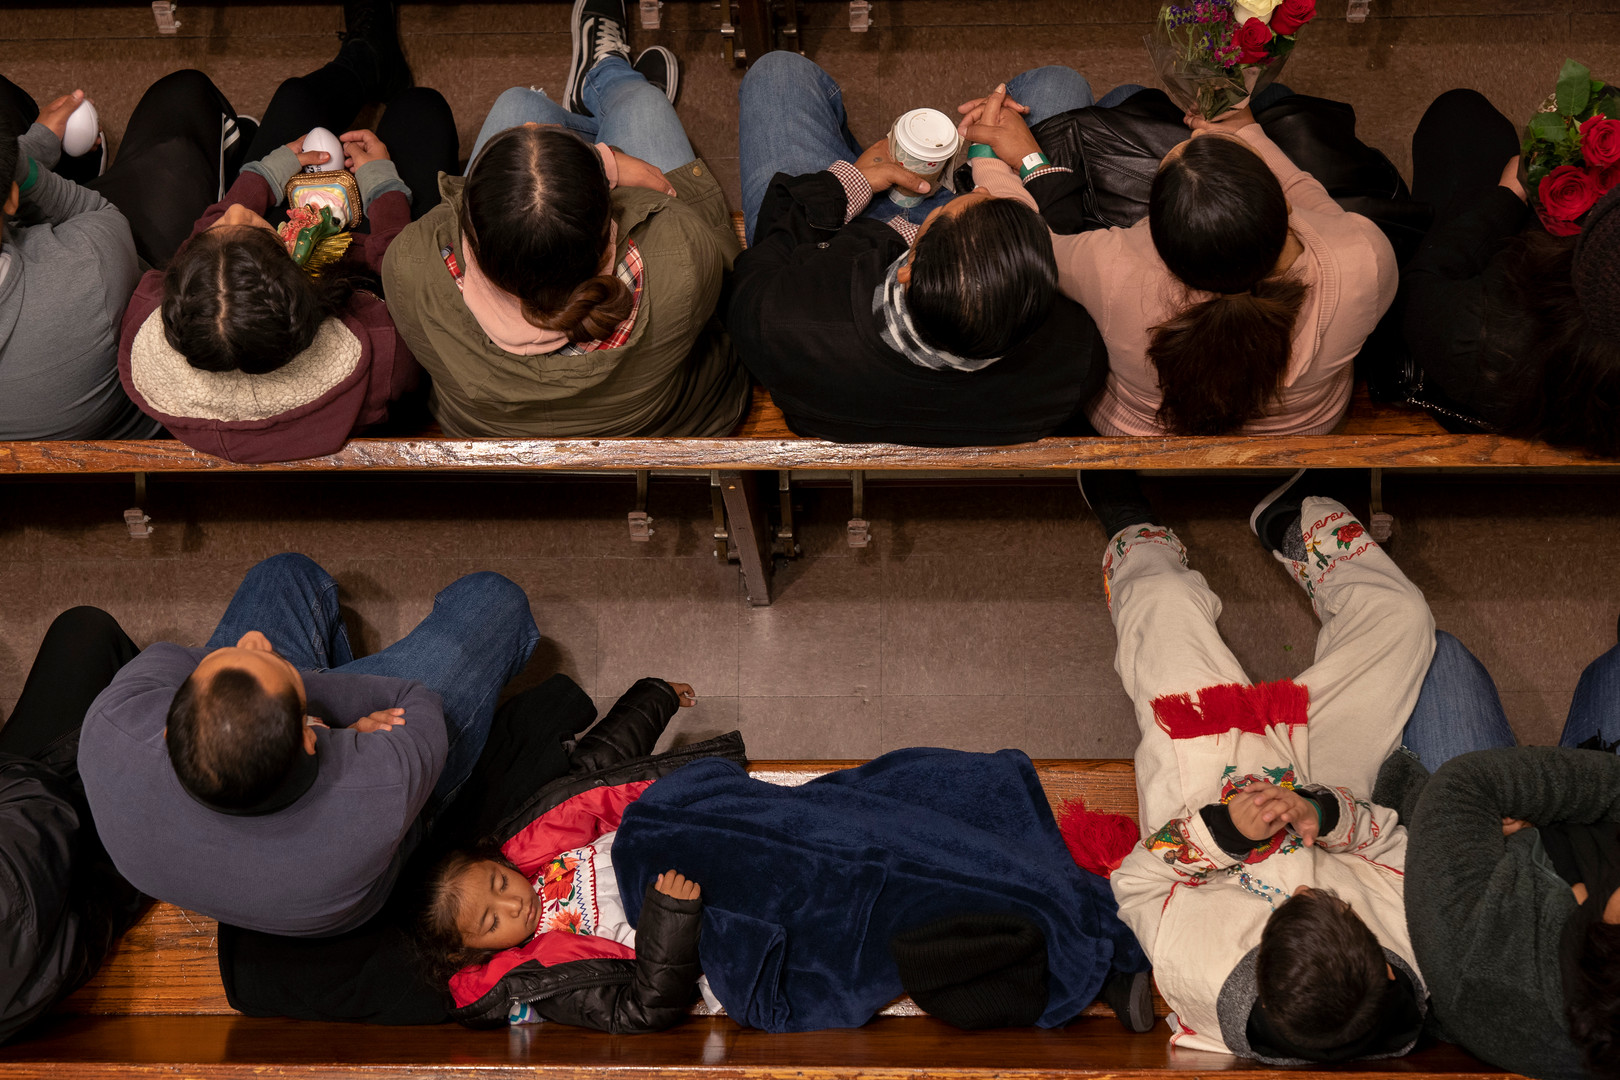 A young girl falls asleep during the 10pm mass at Our Queen Lady of Angeles Catholic Church in Los Angeles, CA.  Every year on December 12th, the Mexican Catholic community commemorates the appearance of Mary to the Mexican peasant Juan Diego in 1531.